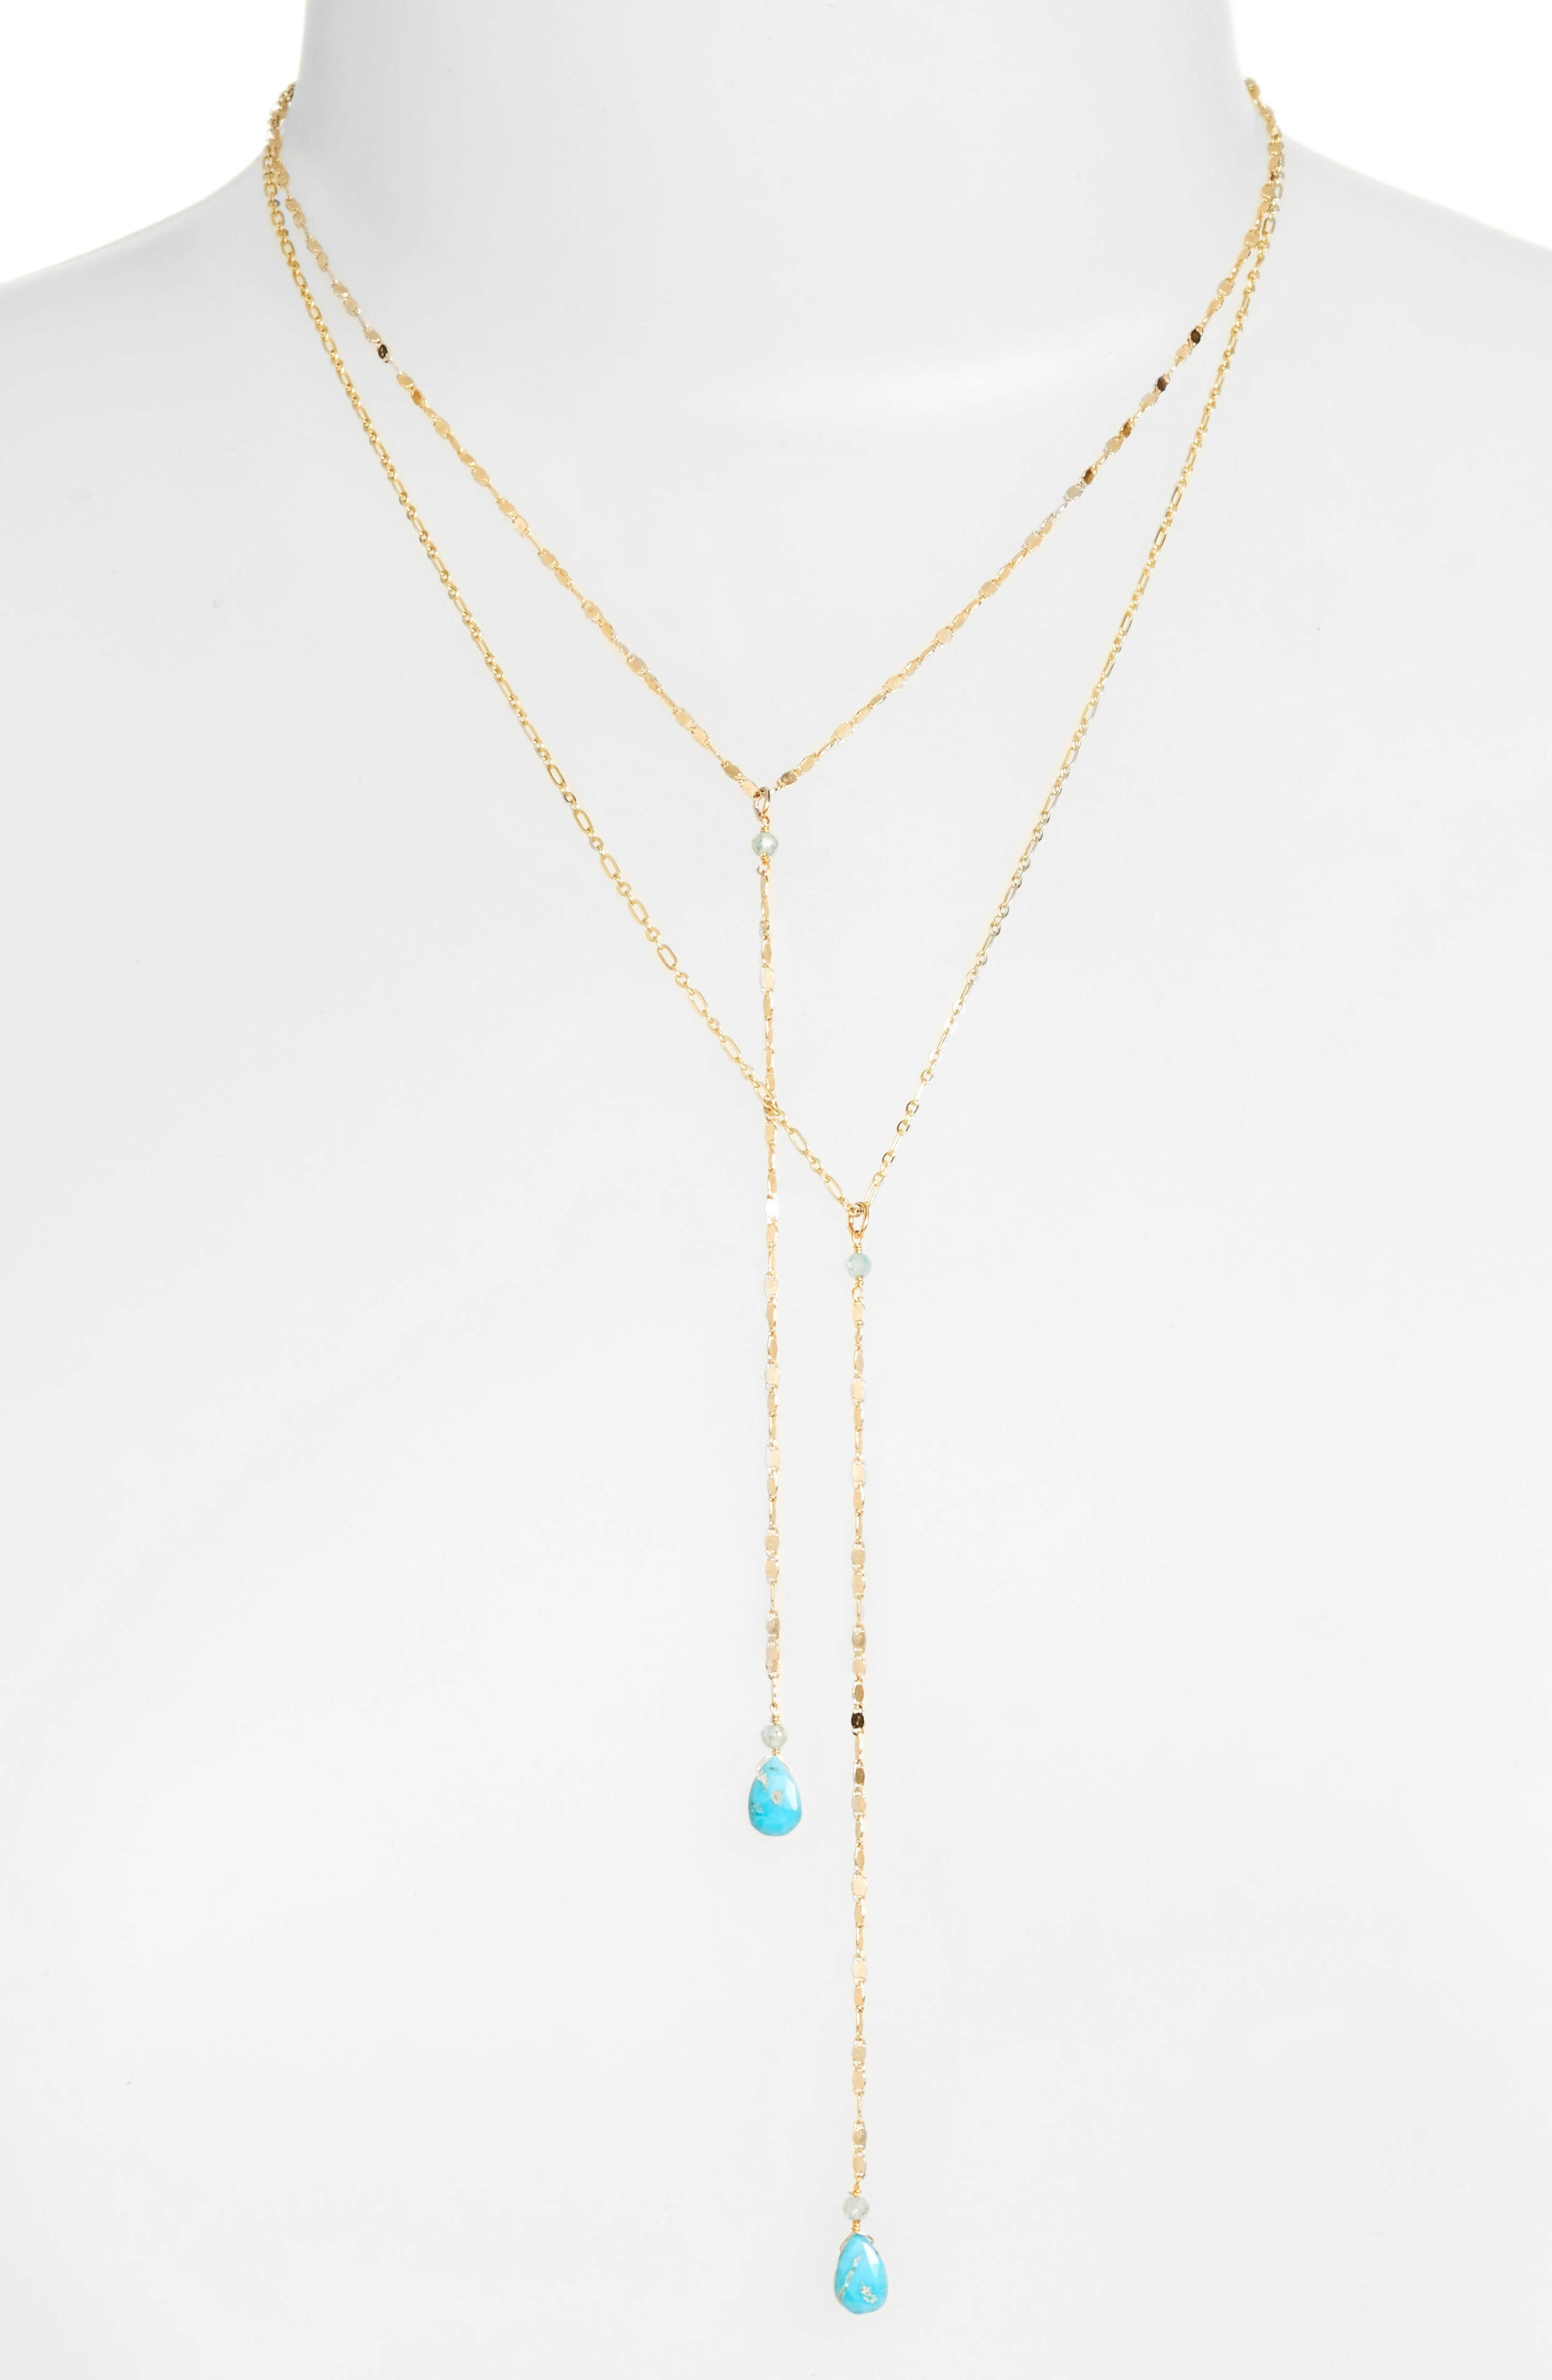 Layered Lariat Necklace,                             Main thumbnail 1, color,                             GOLD/ TURQUOISE